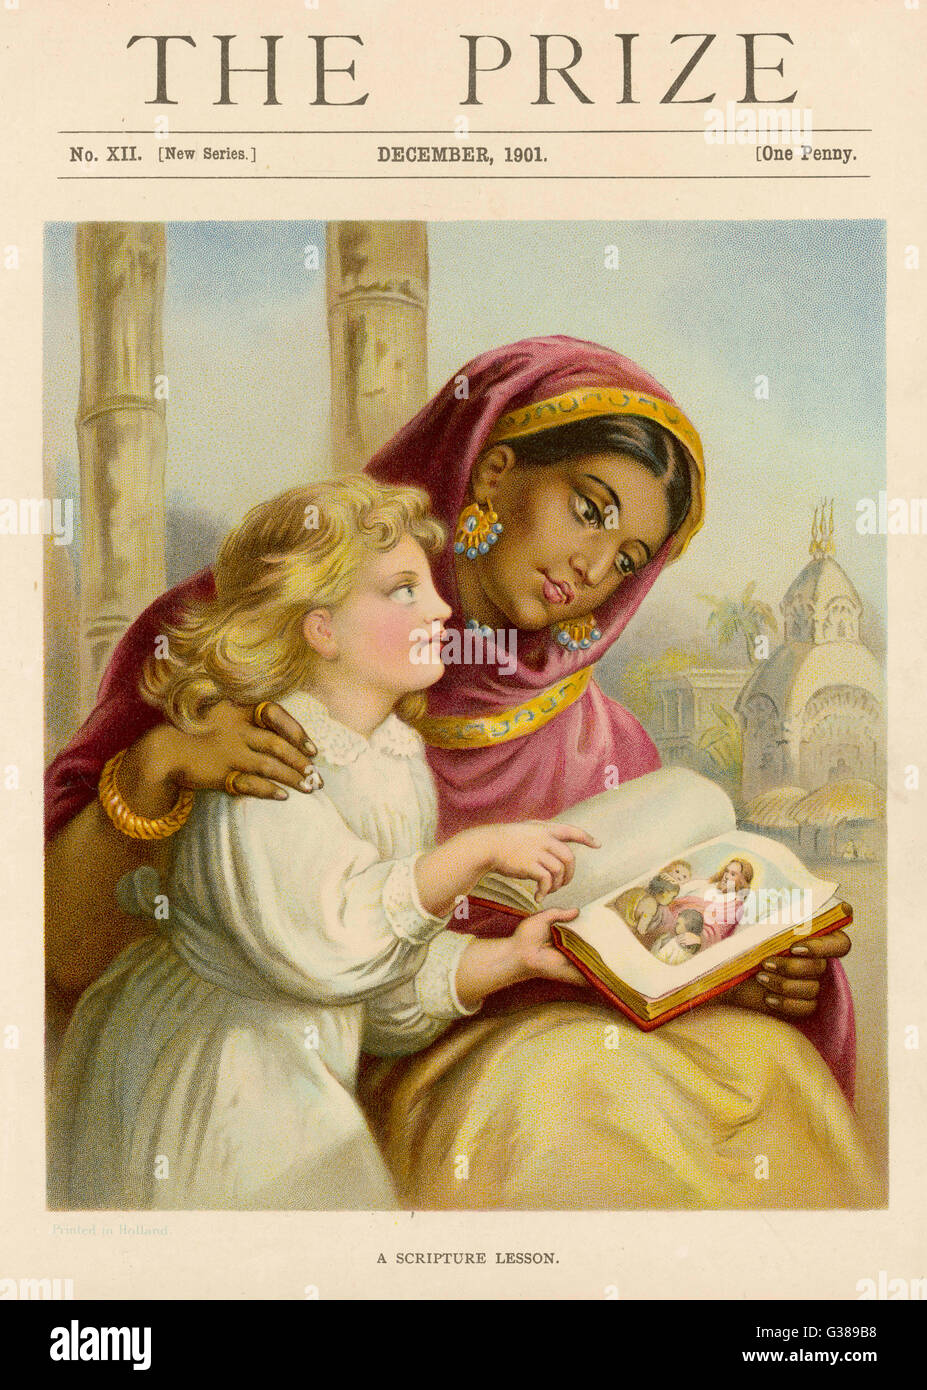 A little white girl gives a  Christian scripture lesson to  an Asian woman.        Date: 1901 - Stock Image